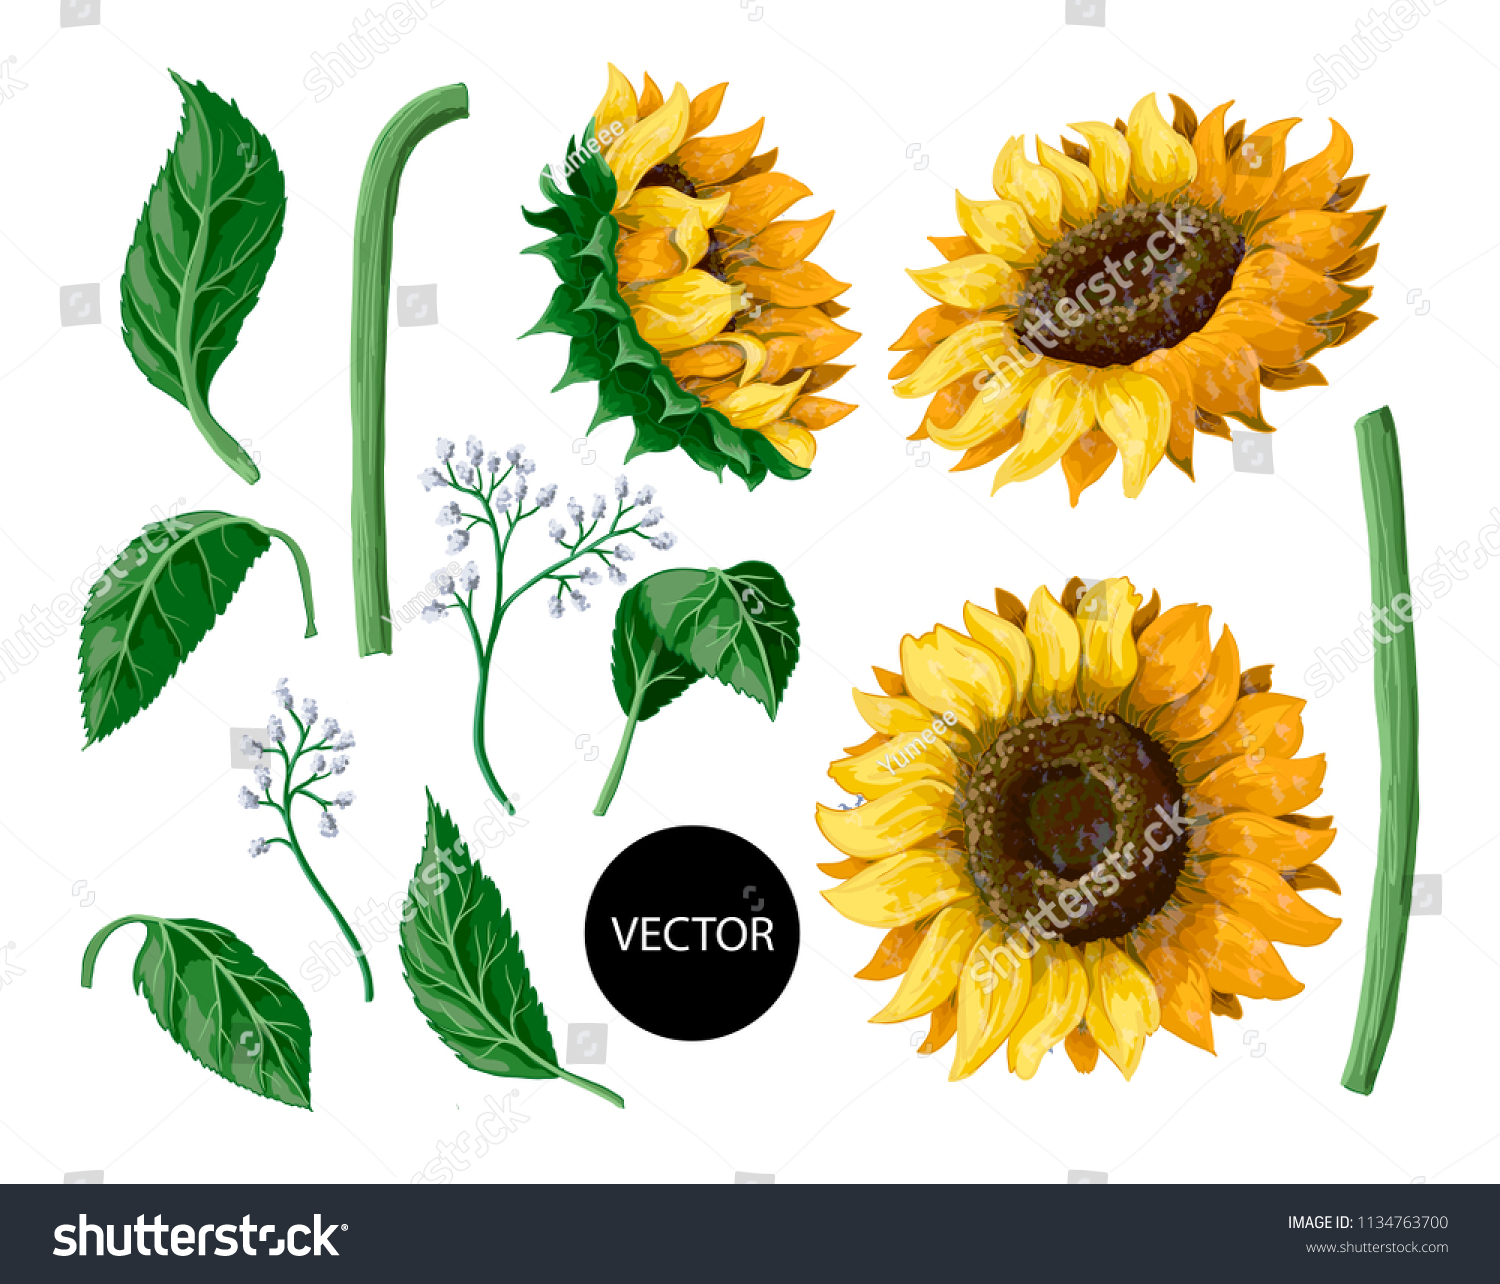 Sunflowers isolated on a white background. Vector illustration.